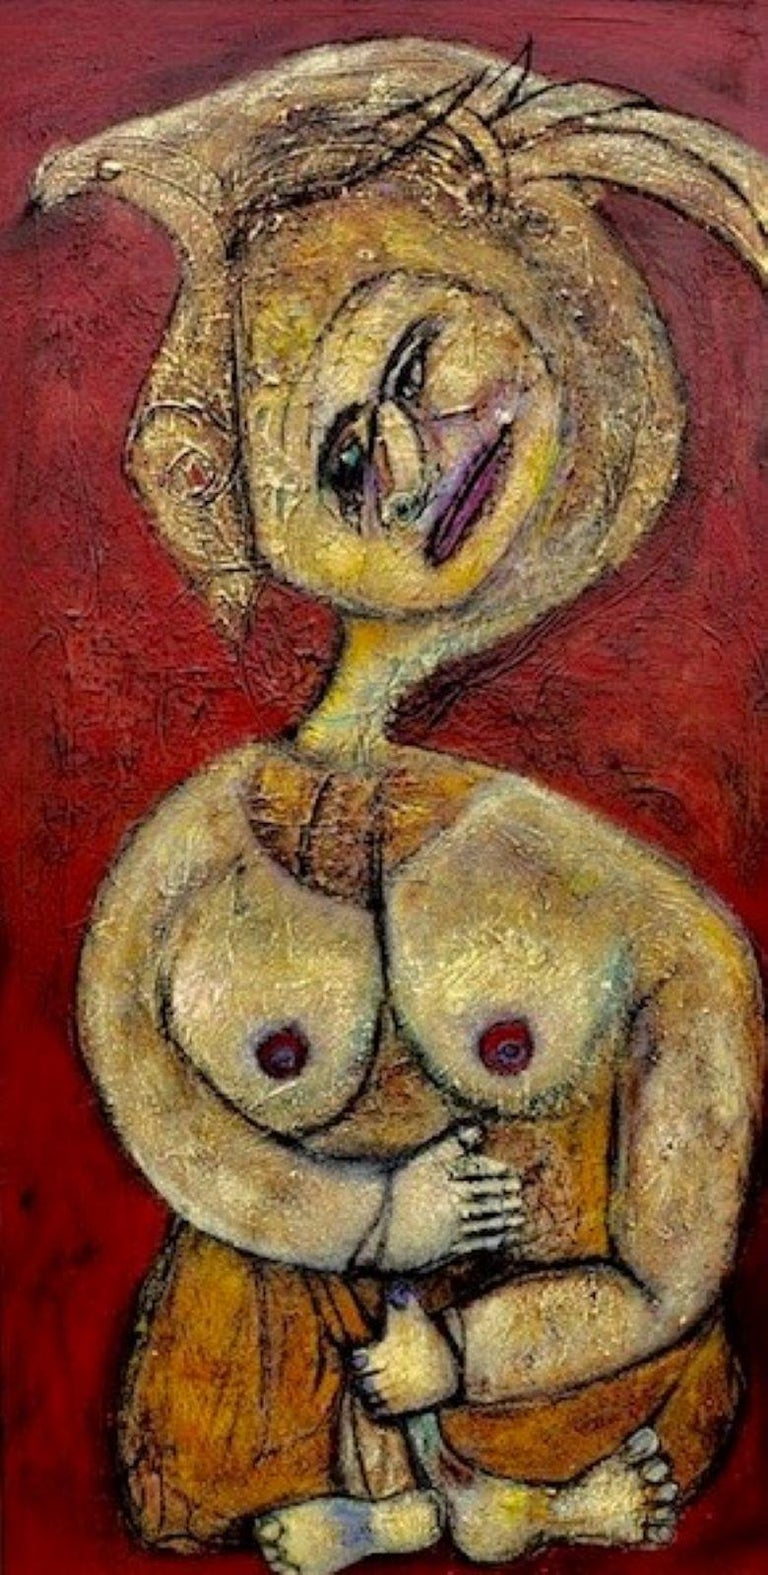 Elisa Valerio Nude Painting - Painting, Layers of Paint, Gold, Red, Female Artist, Queen by Valerio